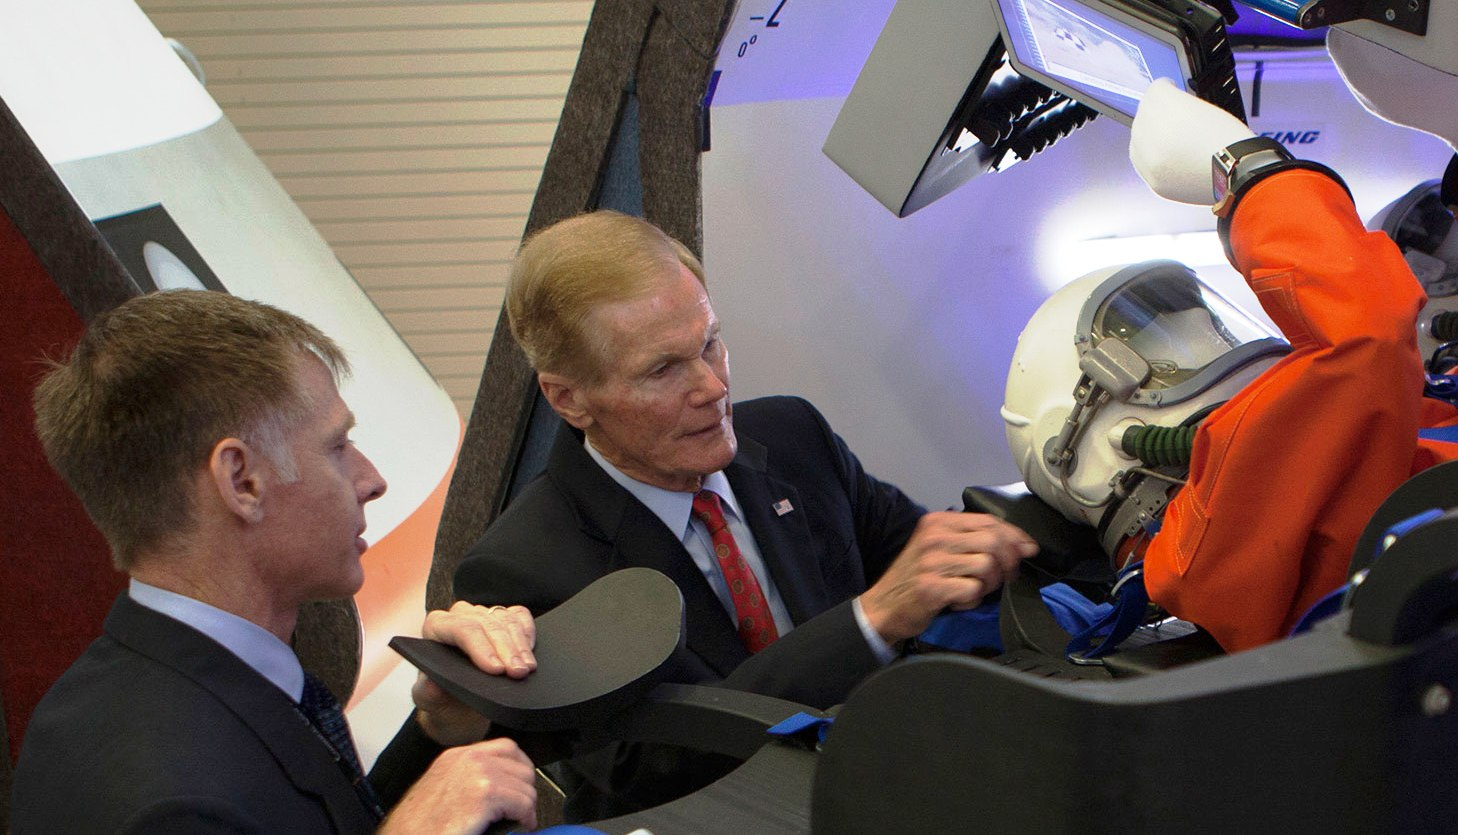 Next NASA chief will face big decisions on future moonshots (and Blue Origin's role)